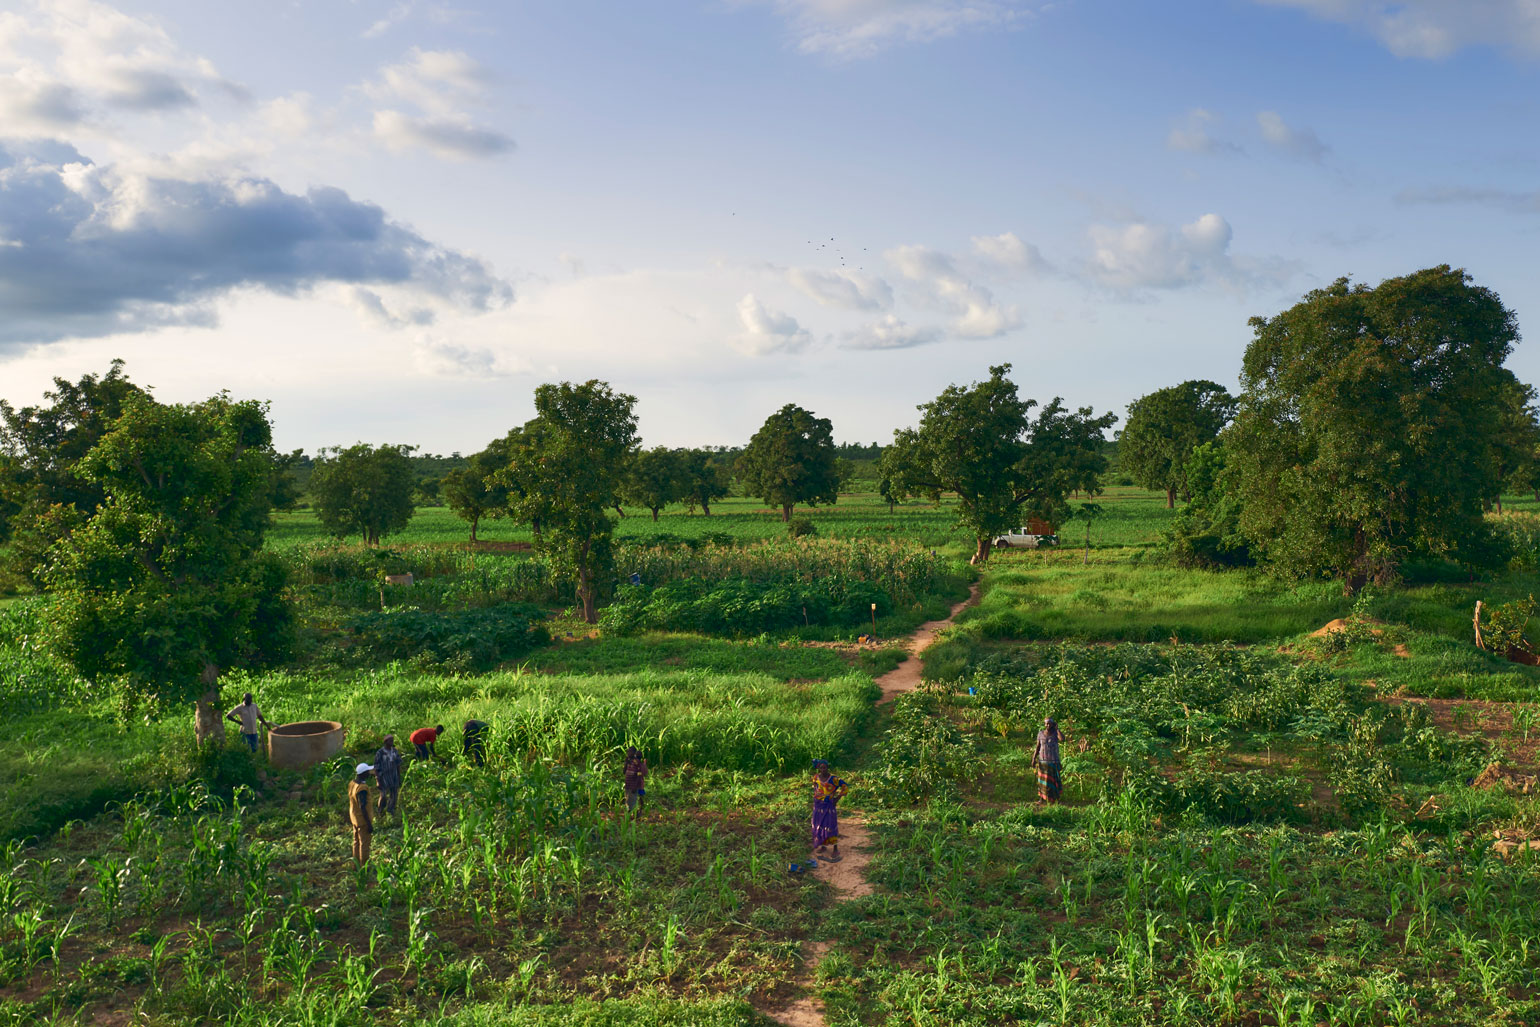 UN Food Systems Summit 2021 - Landscape photo of a lush farm field. There are loose groups of crops like corn and eggplant, dotted with trees and farmers. There is a concrete well in the field.